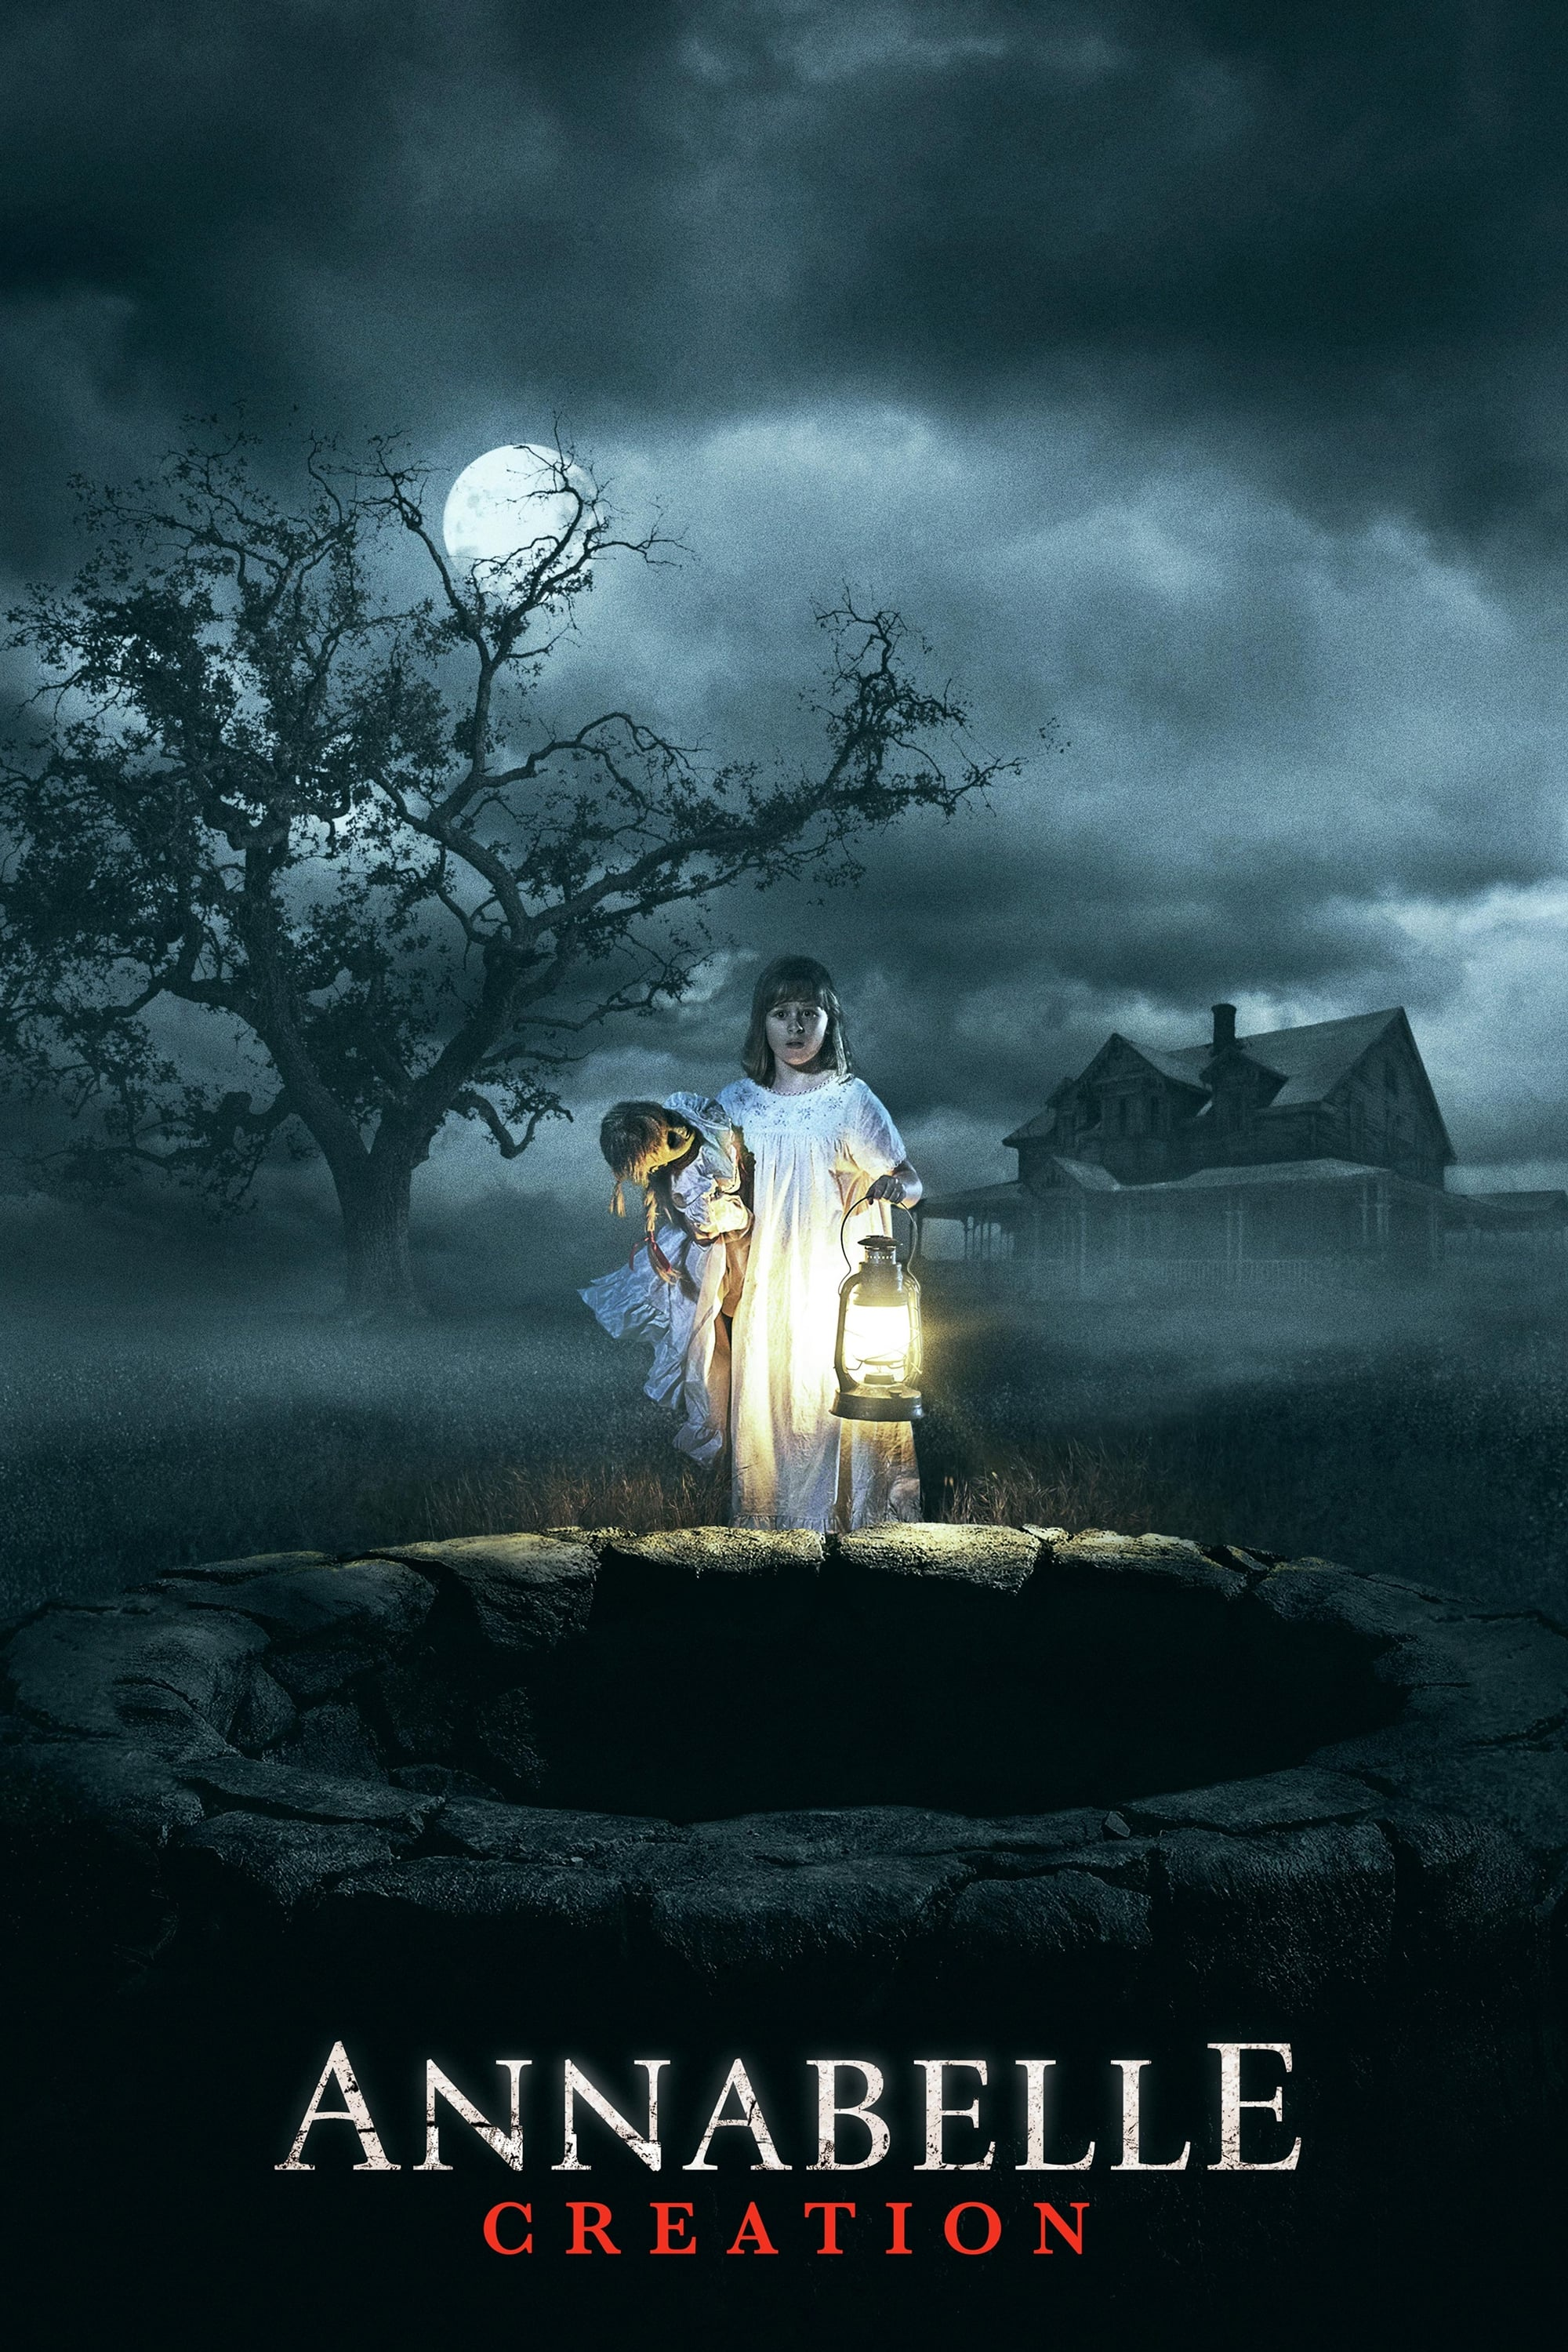 image for Annabelle: Creation